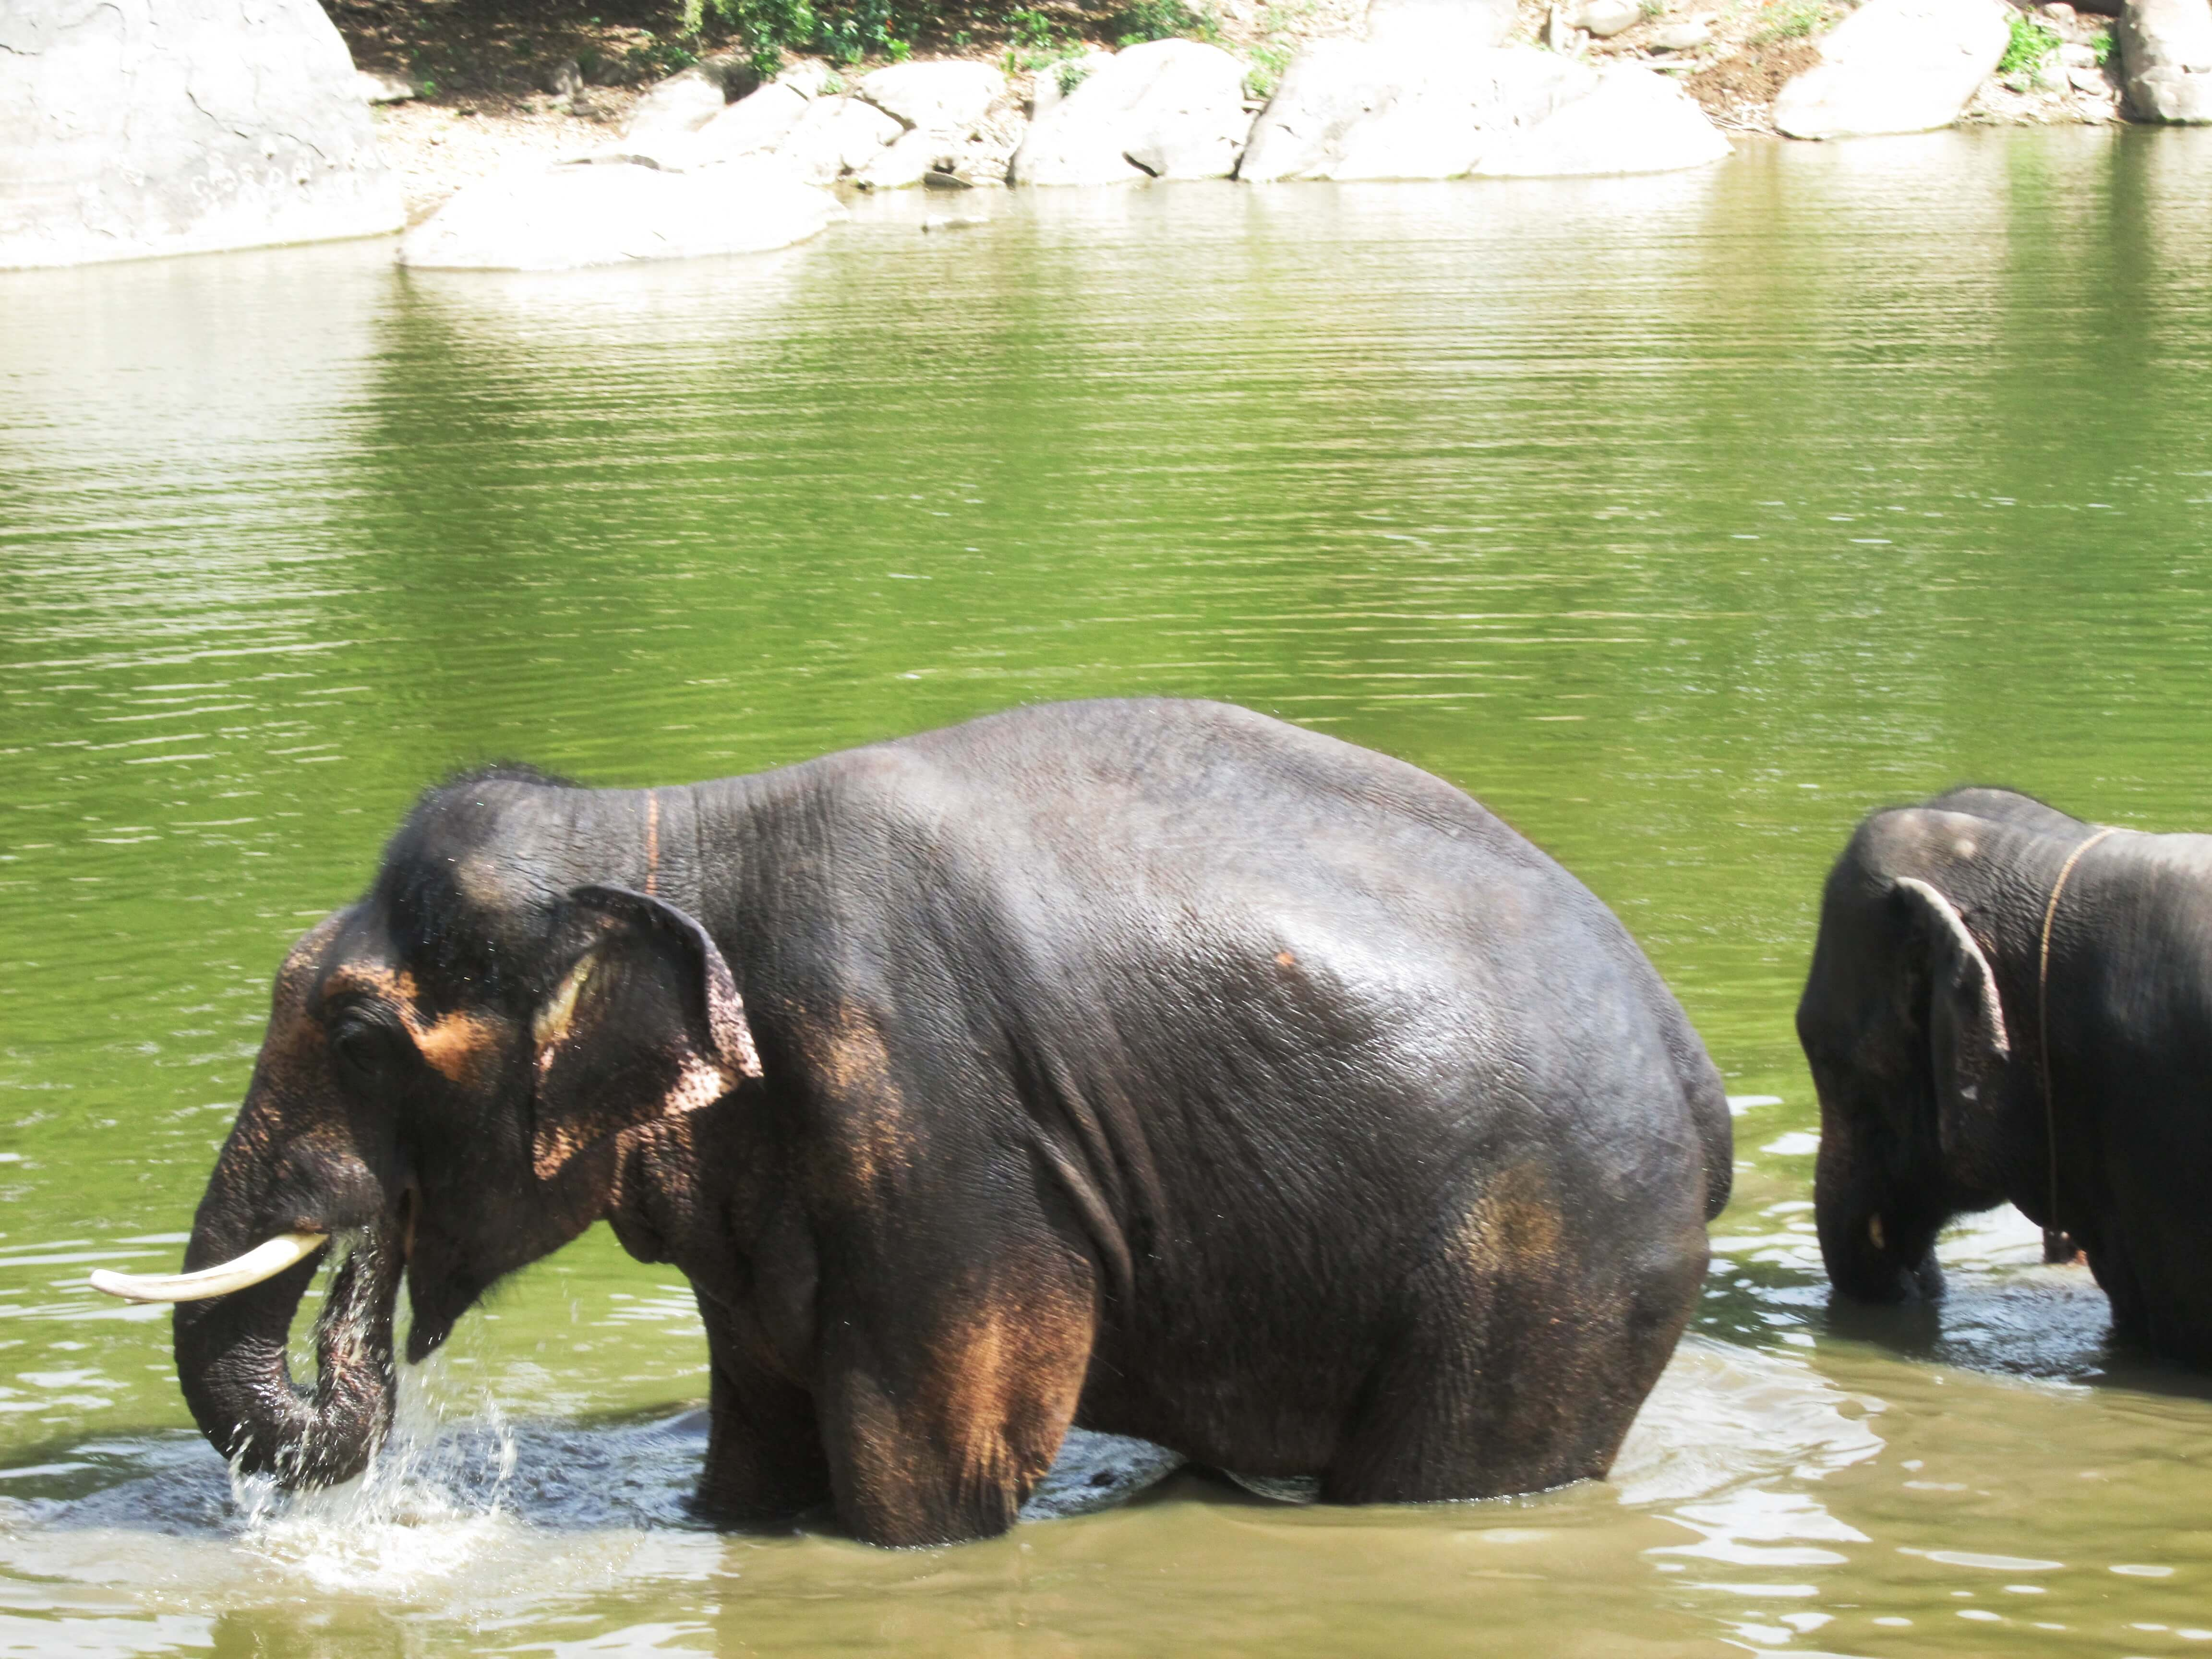 Sunder thinks this water is refreshing in more ways than one.